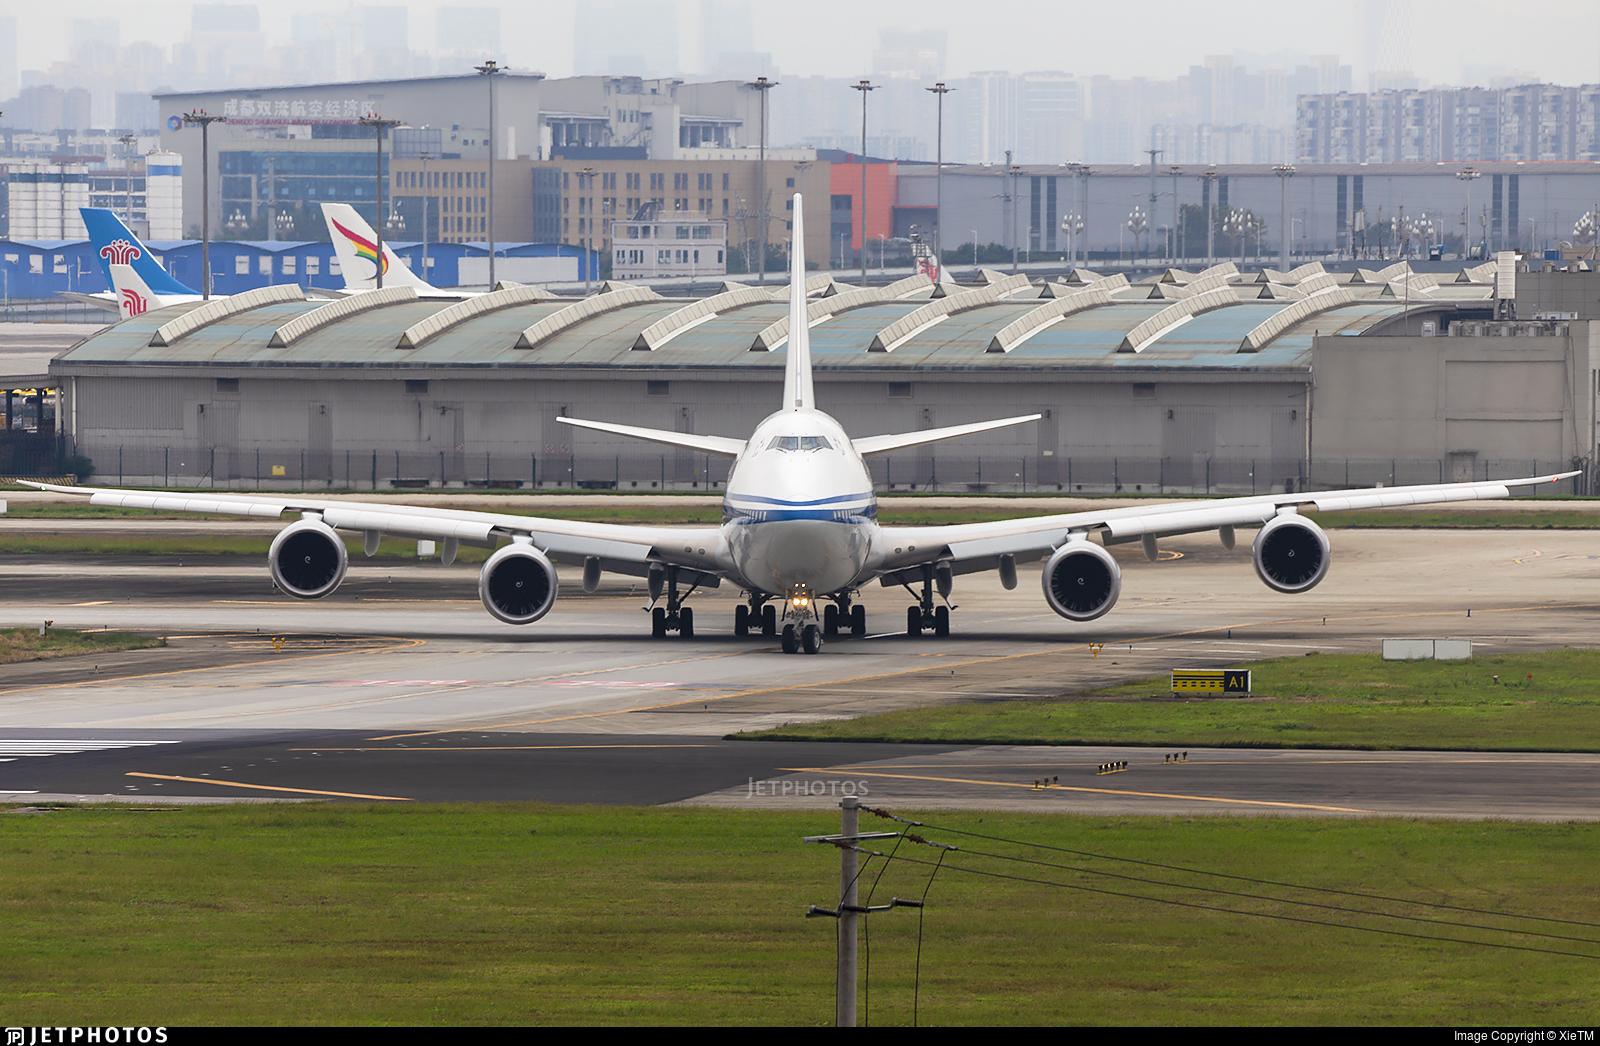 Air China Boeing 747 747-8I Chengdu China here's where you can spot them 747s still flying